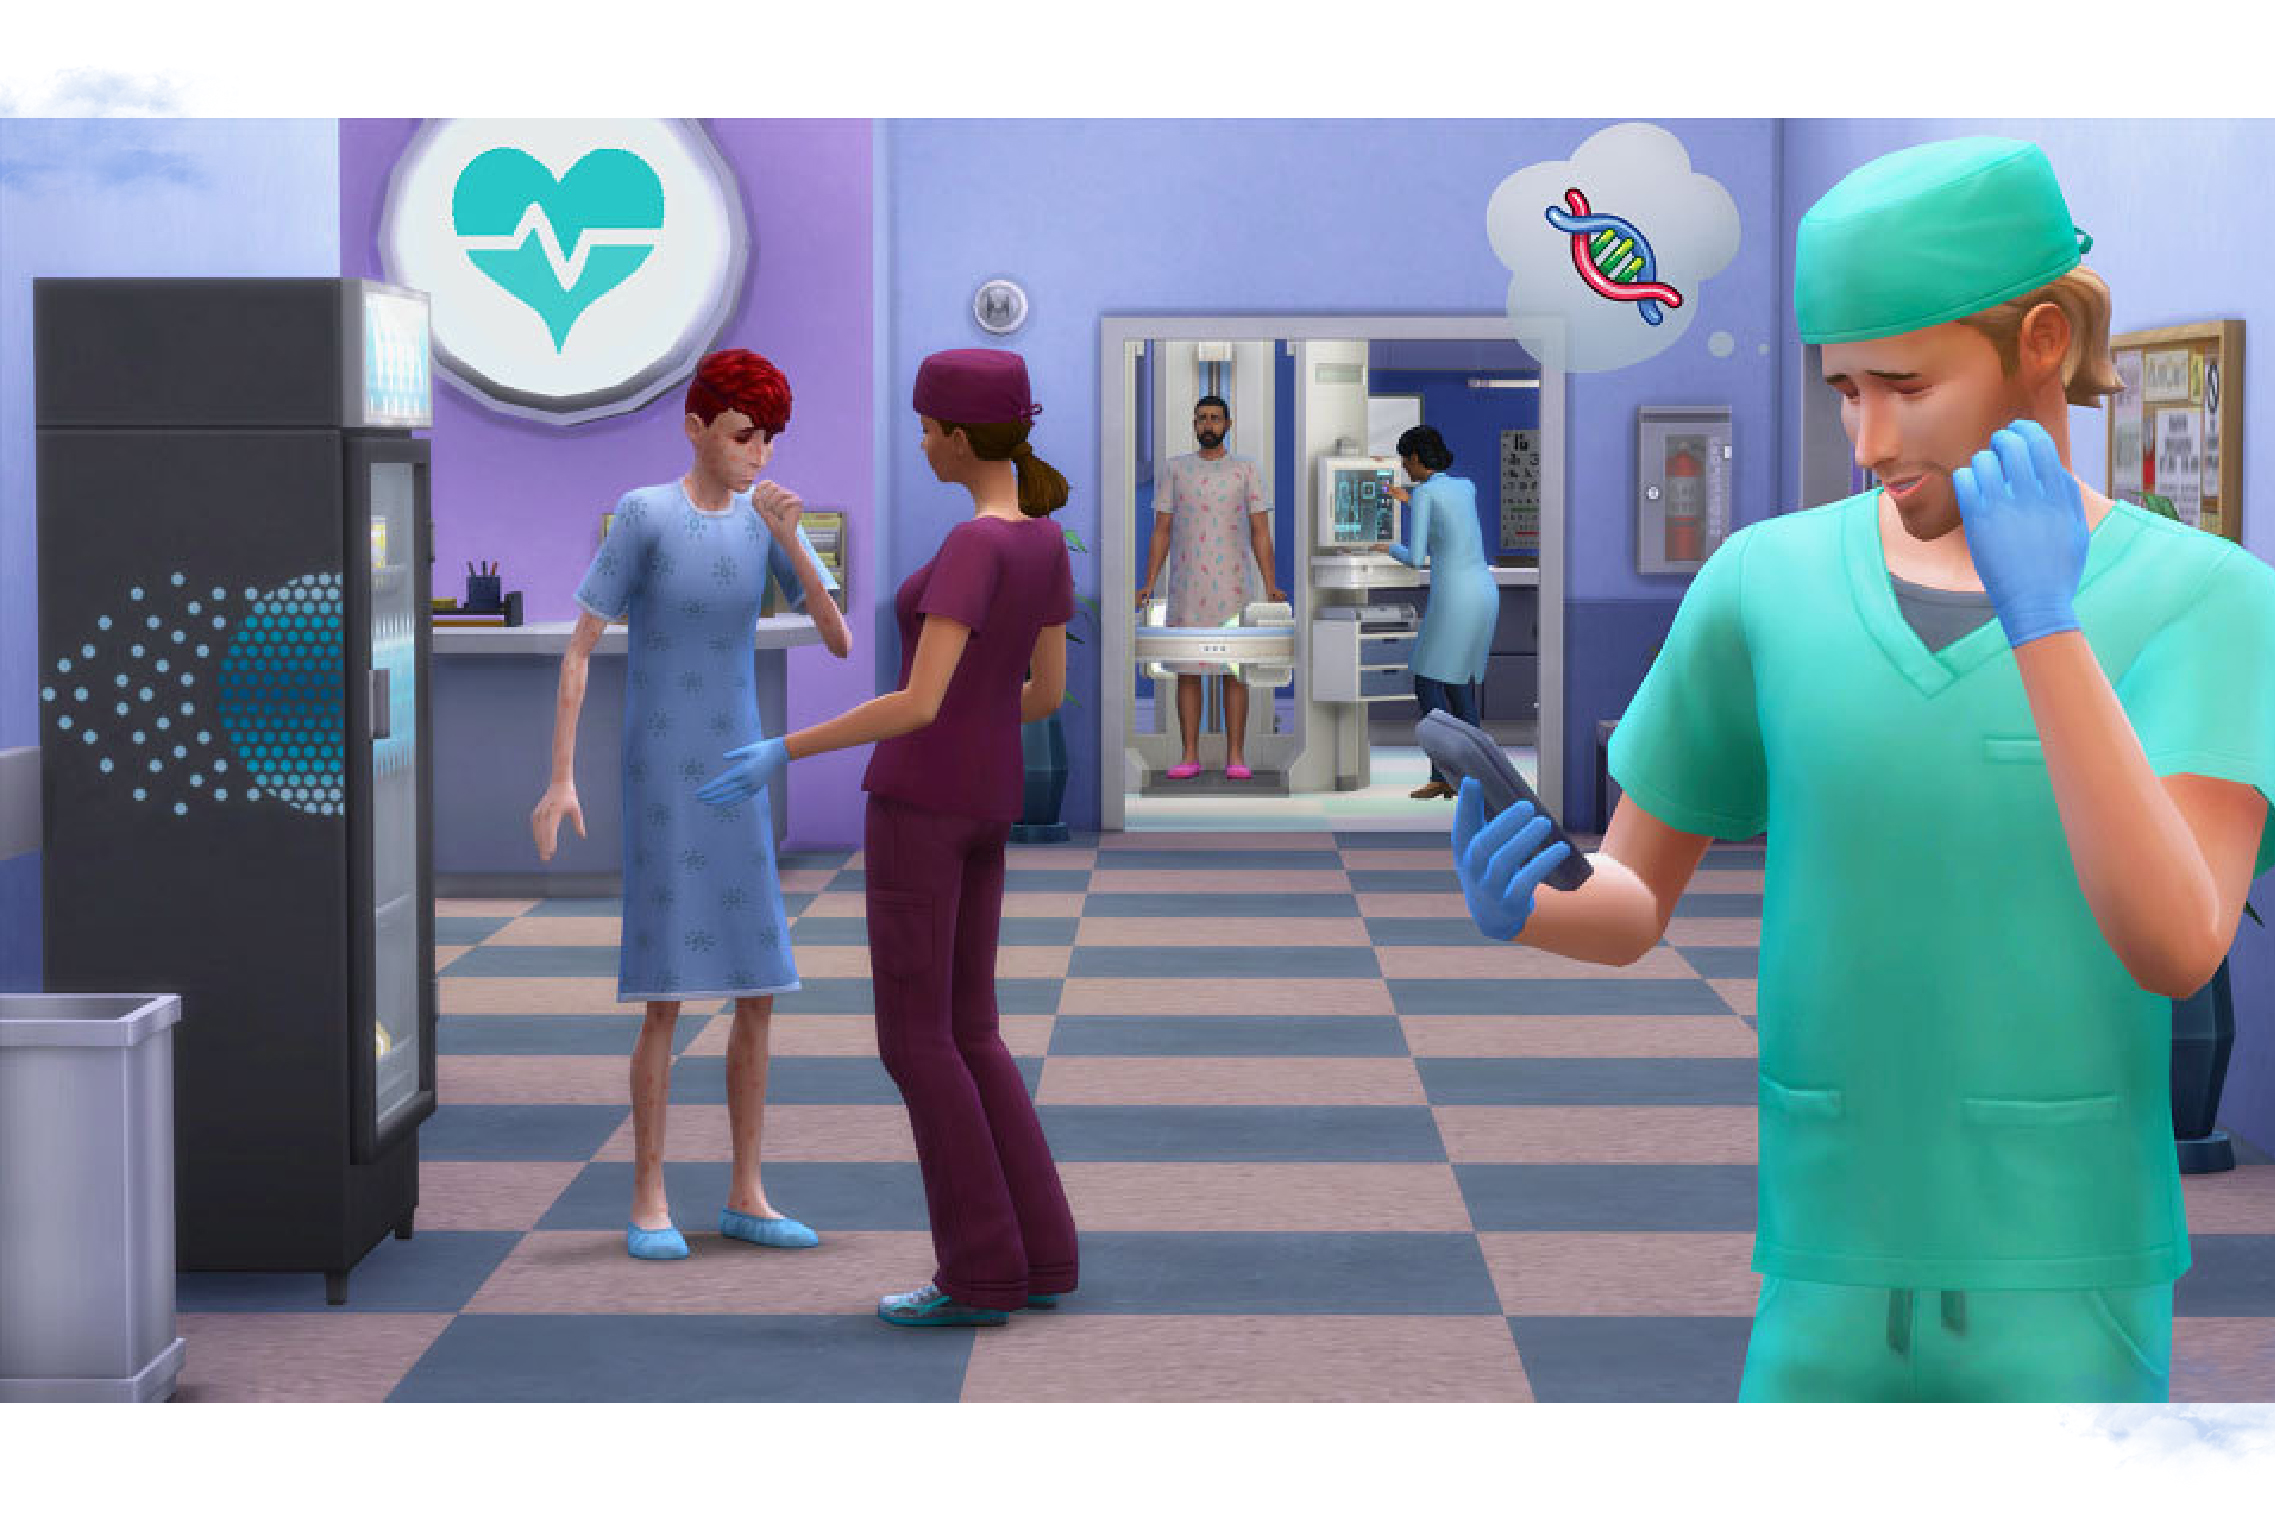 The Sims 4: Ranking the Packs 3